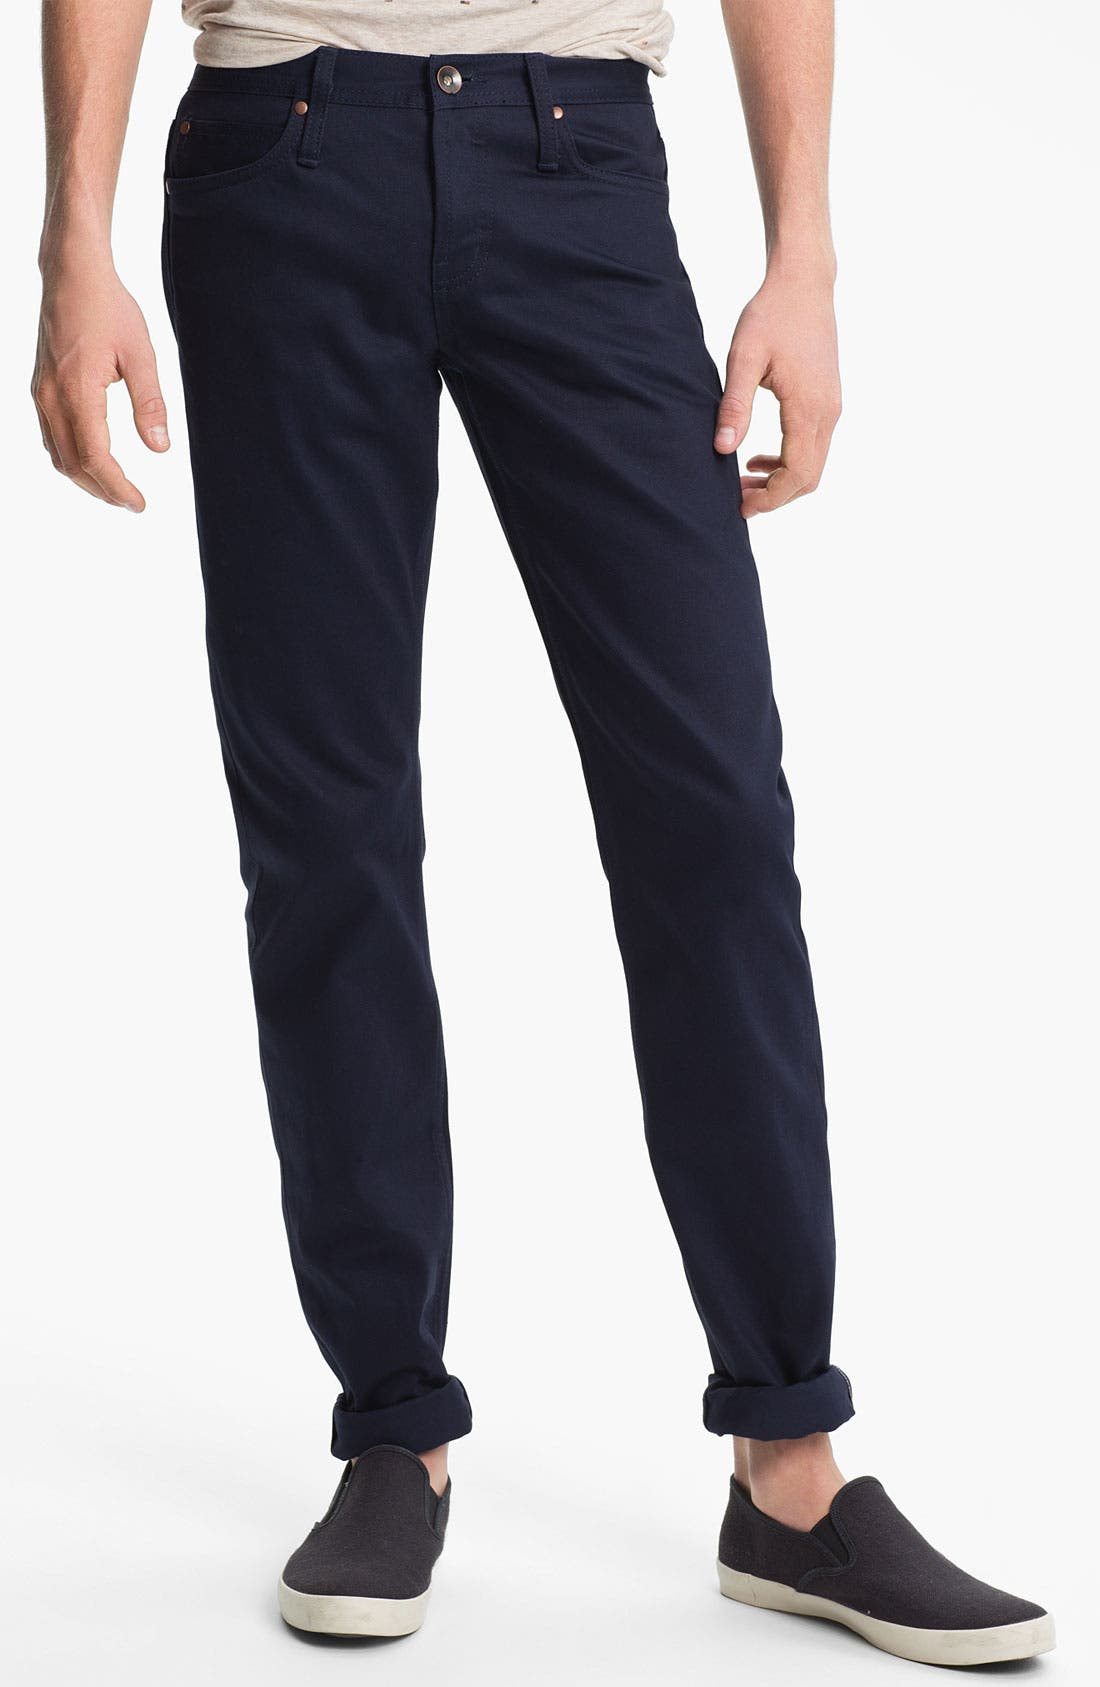 Alternate Image 2  - The Unbranded Brand 'UB108' Skinny Fit Selvedge Chinos (Online Exclusive)